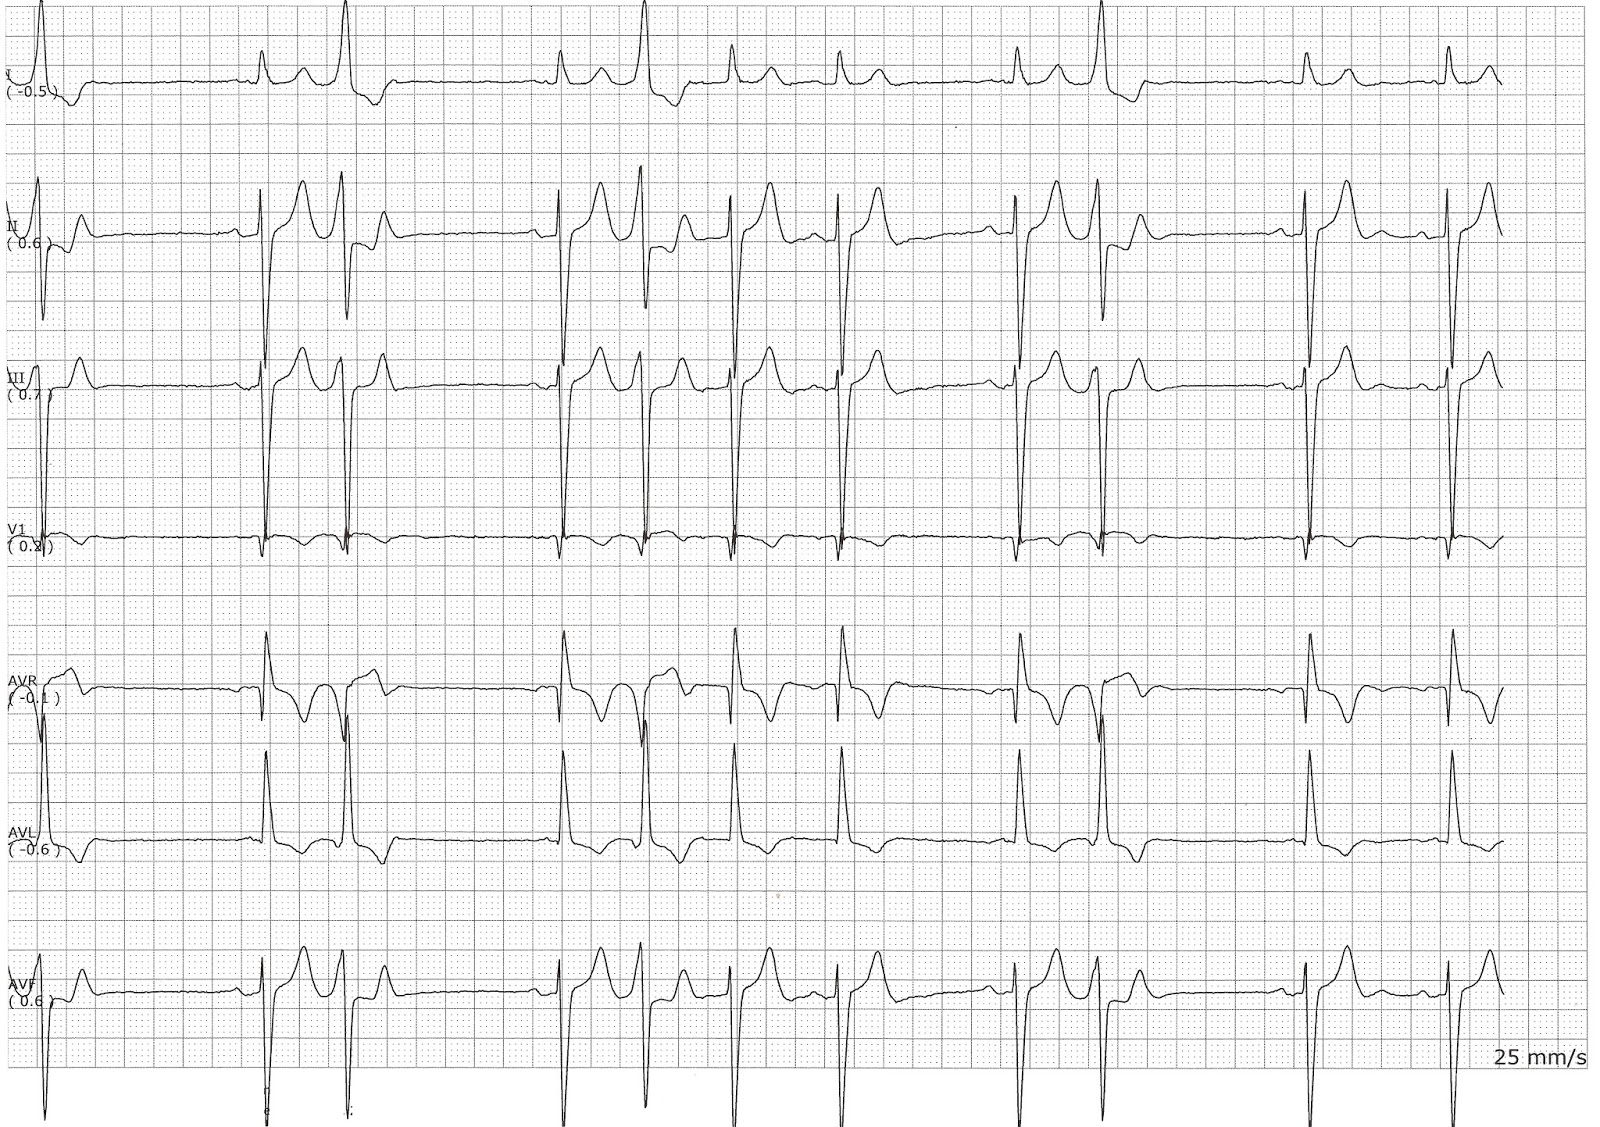 Telemetry Technician Course: Practice EKG Quiz